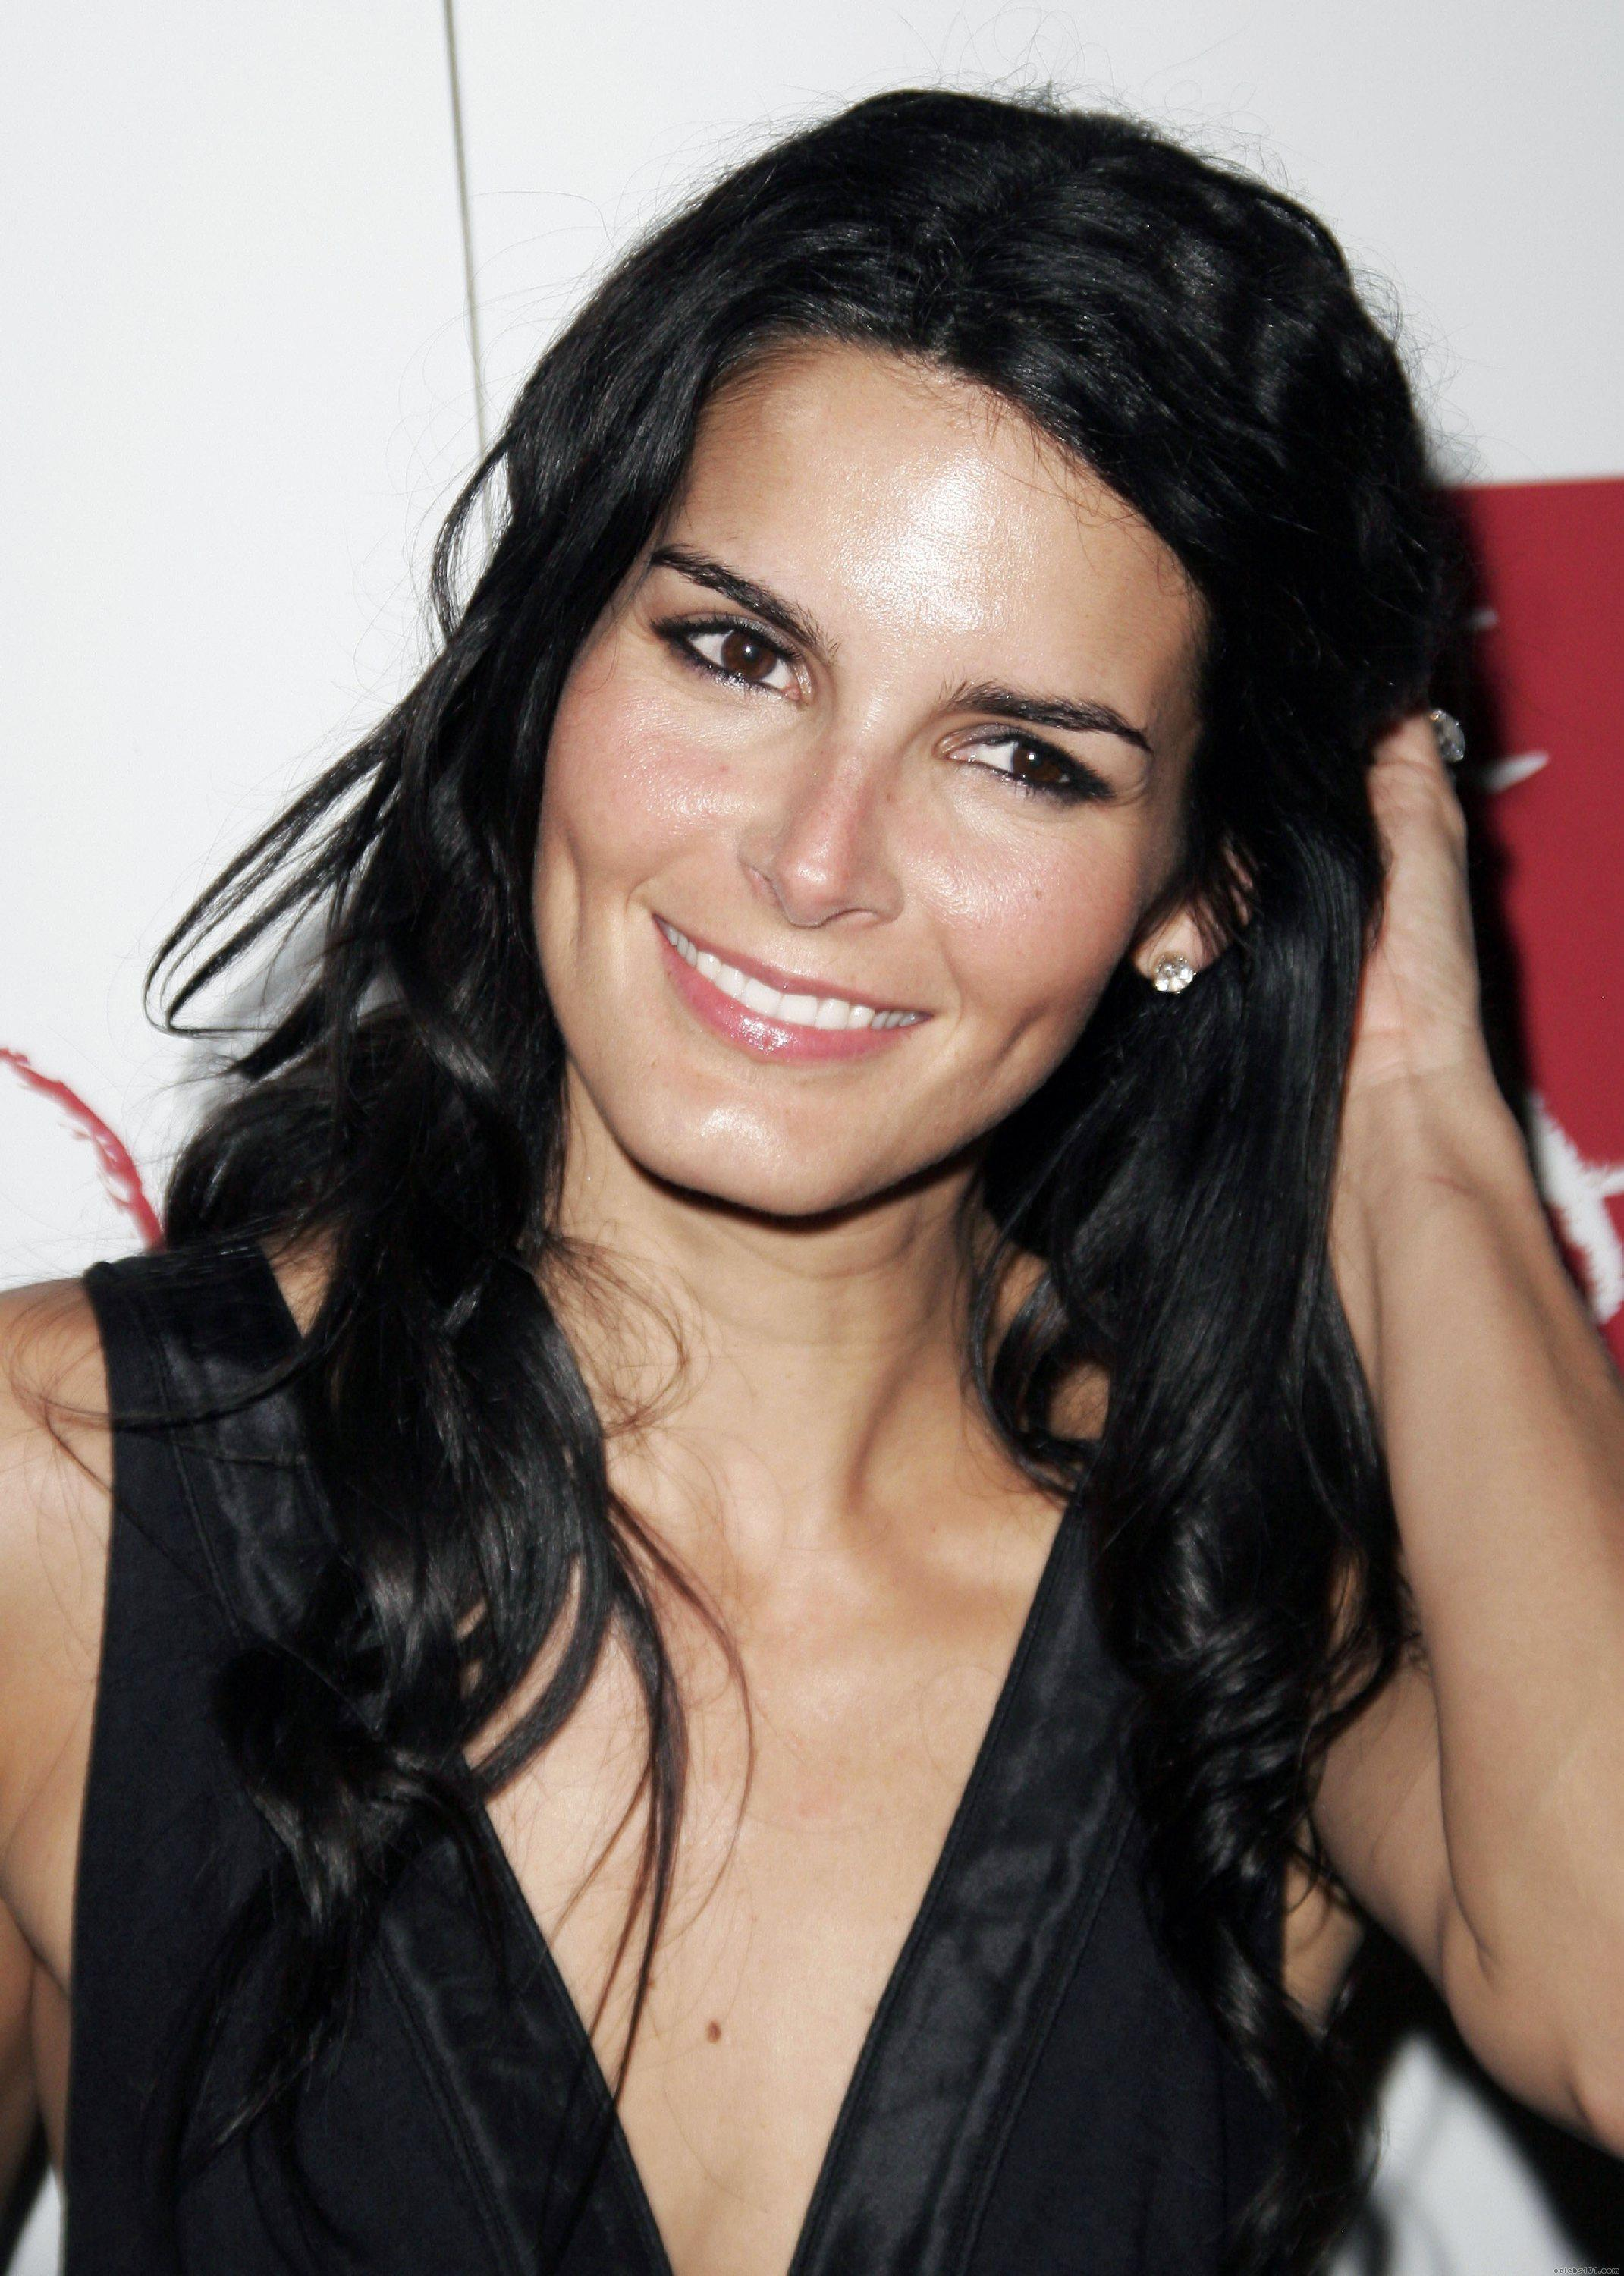 Angie Harmon Iphone Sexy Wallpapers